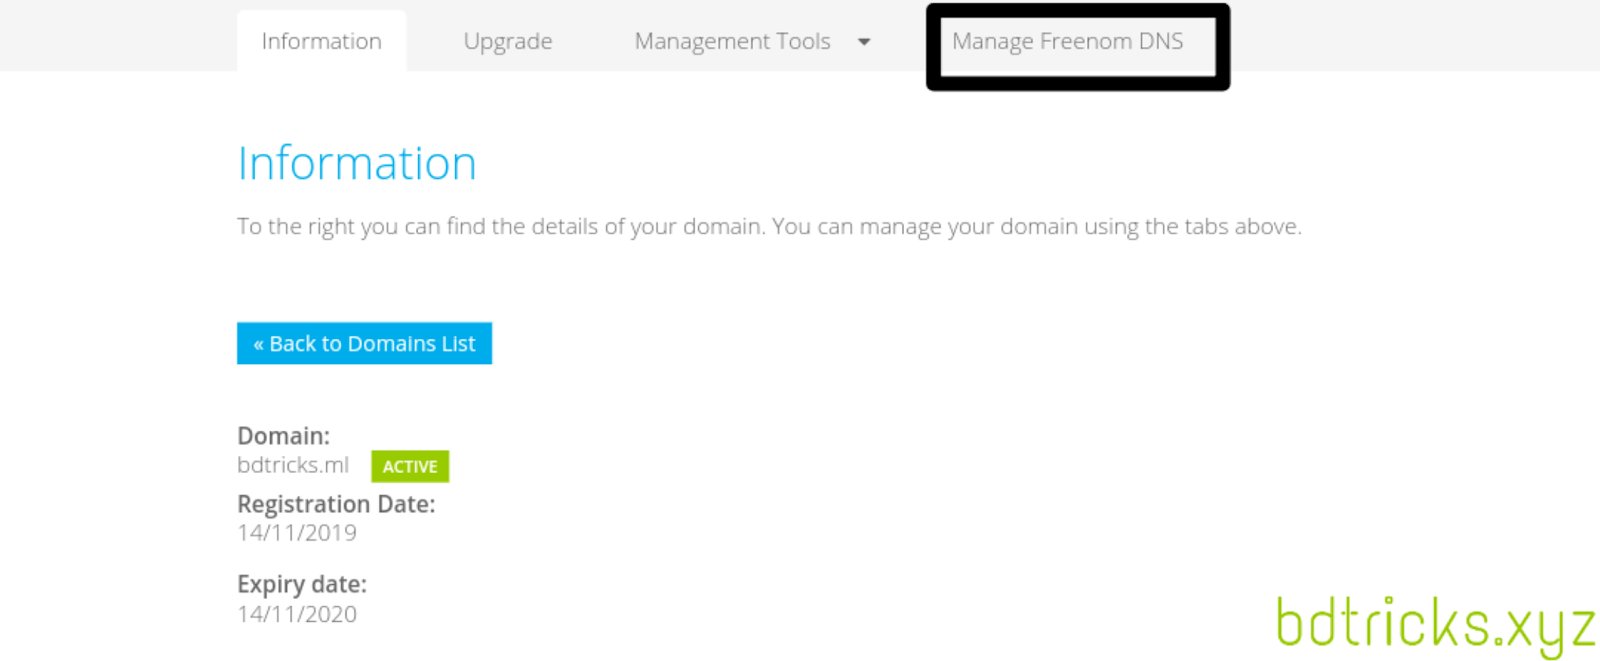 How to add a Freenom Domain in Blogger || কিভাবে একটি Freenom domain blogger এ লাগাবো